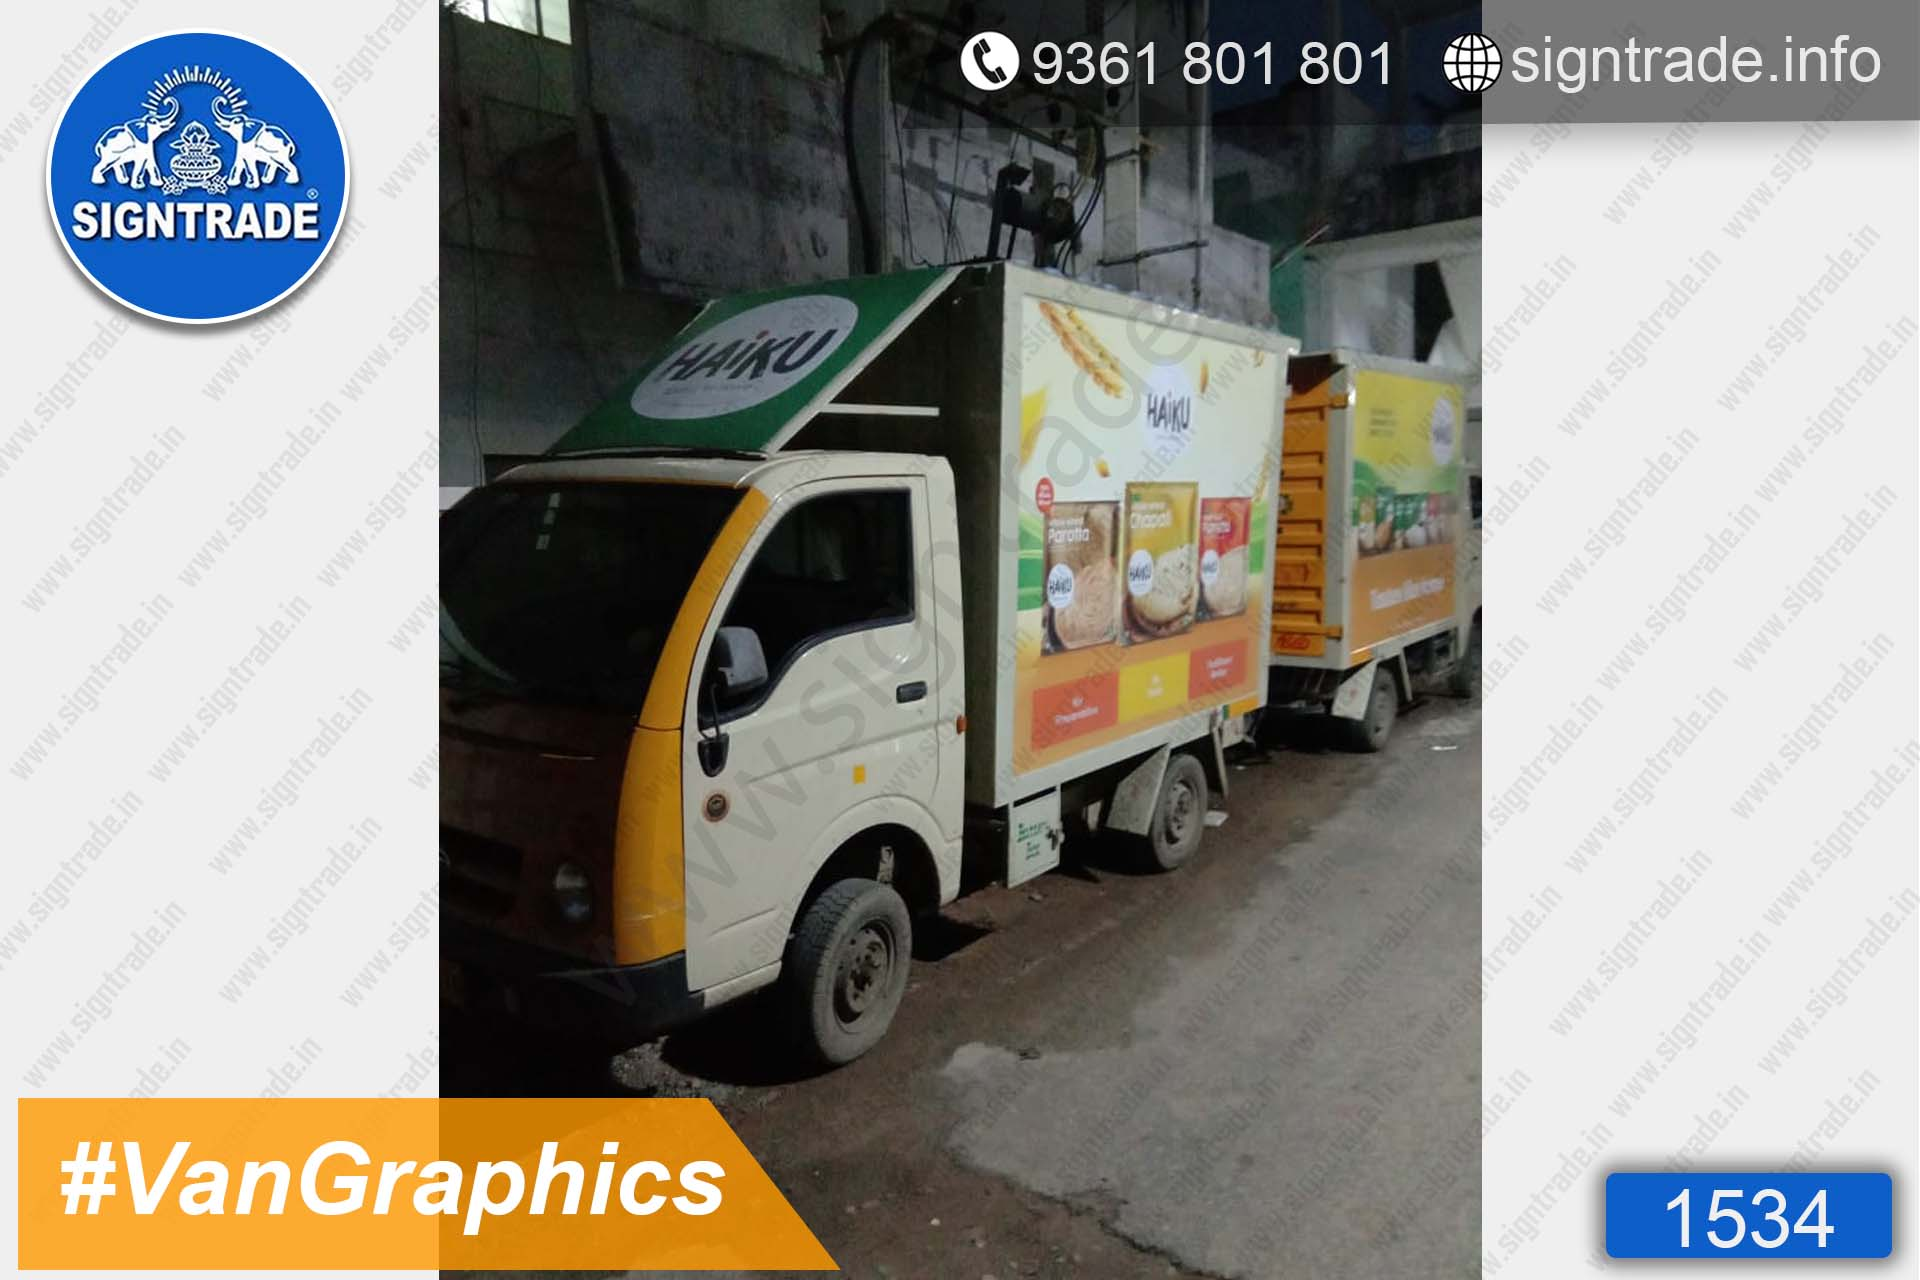 AK Foods, Chennai - SIGNTRADE - Vinyl, Stickers, Van Graphics, Vehicle Graphics and Wraps Service Provider in Chennai